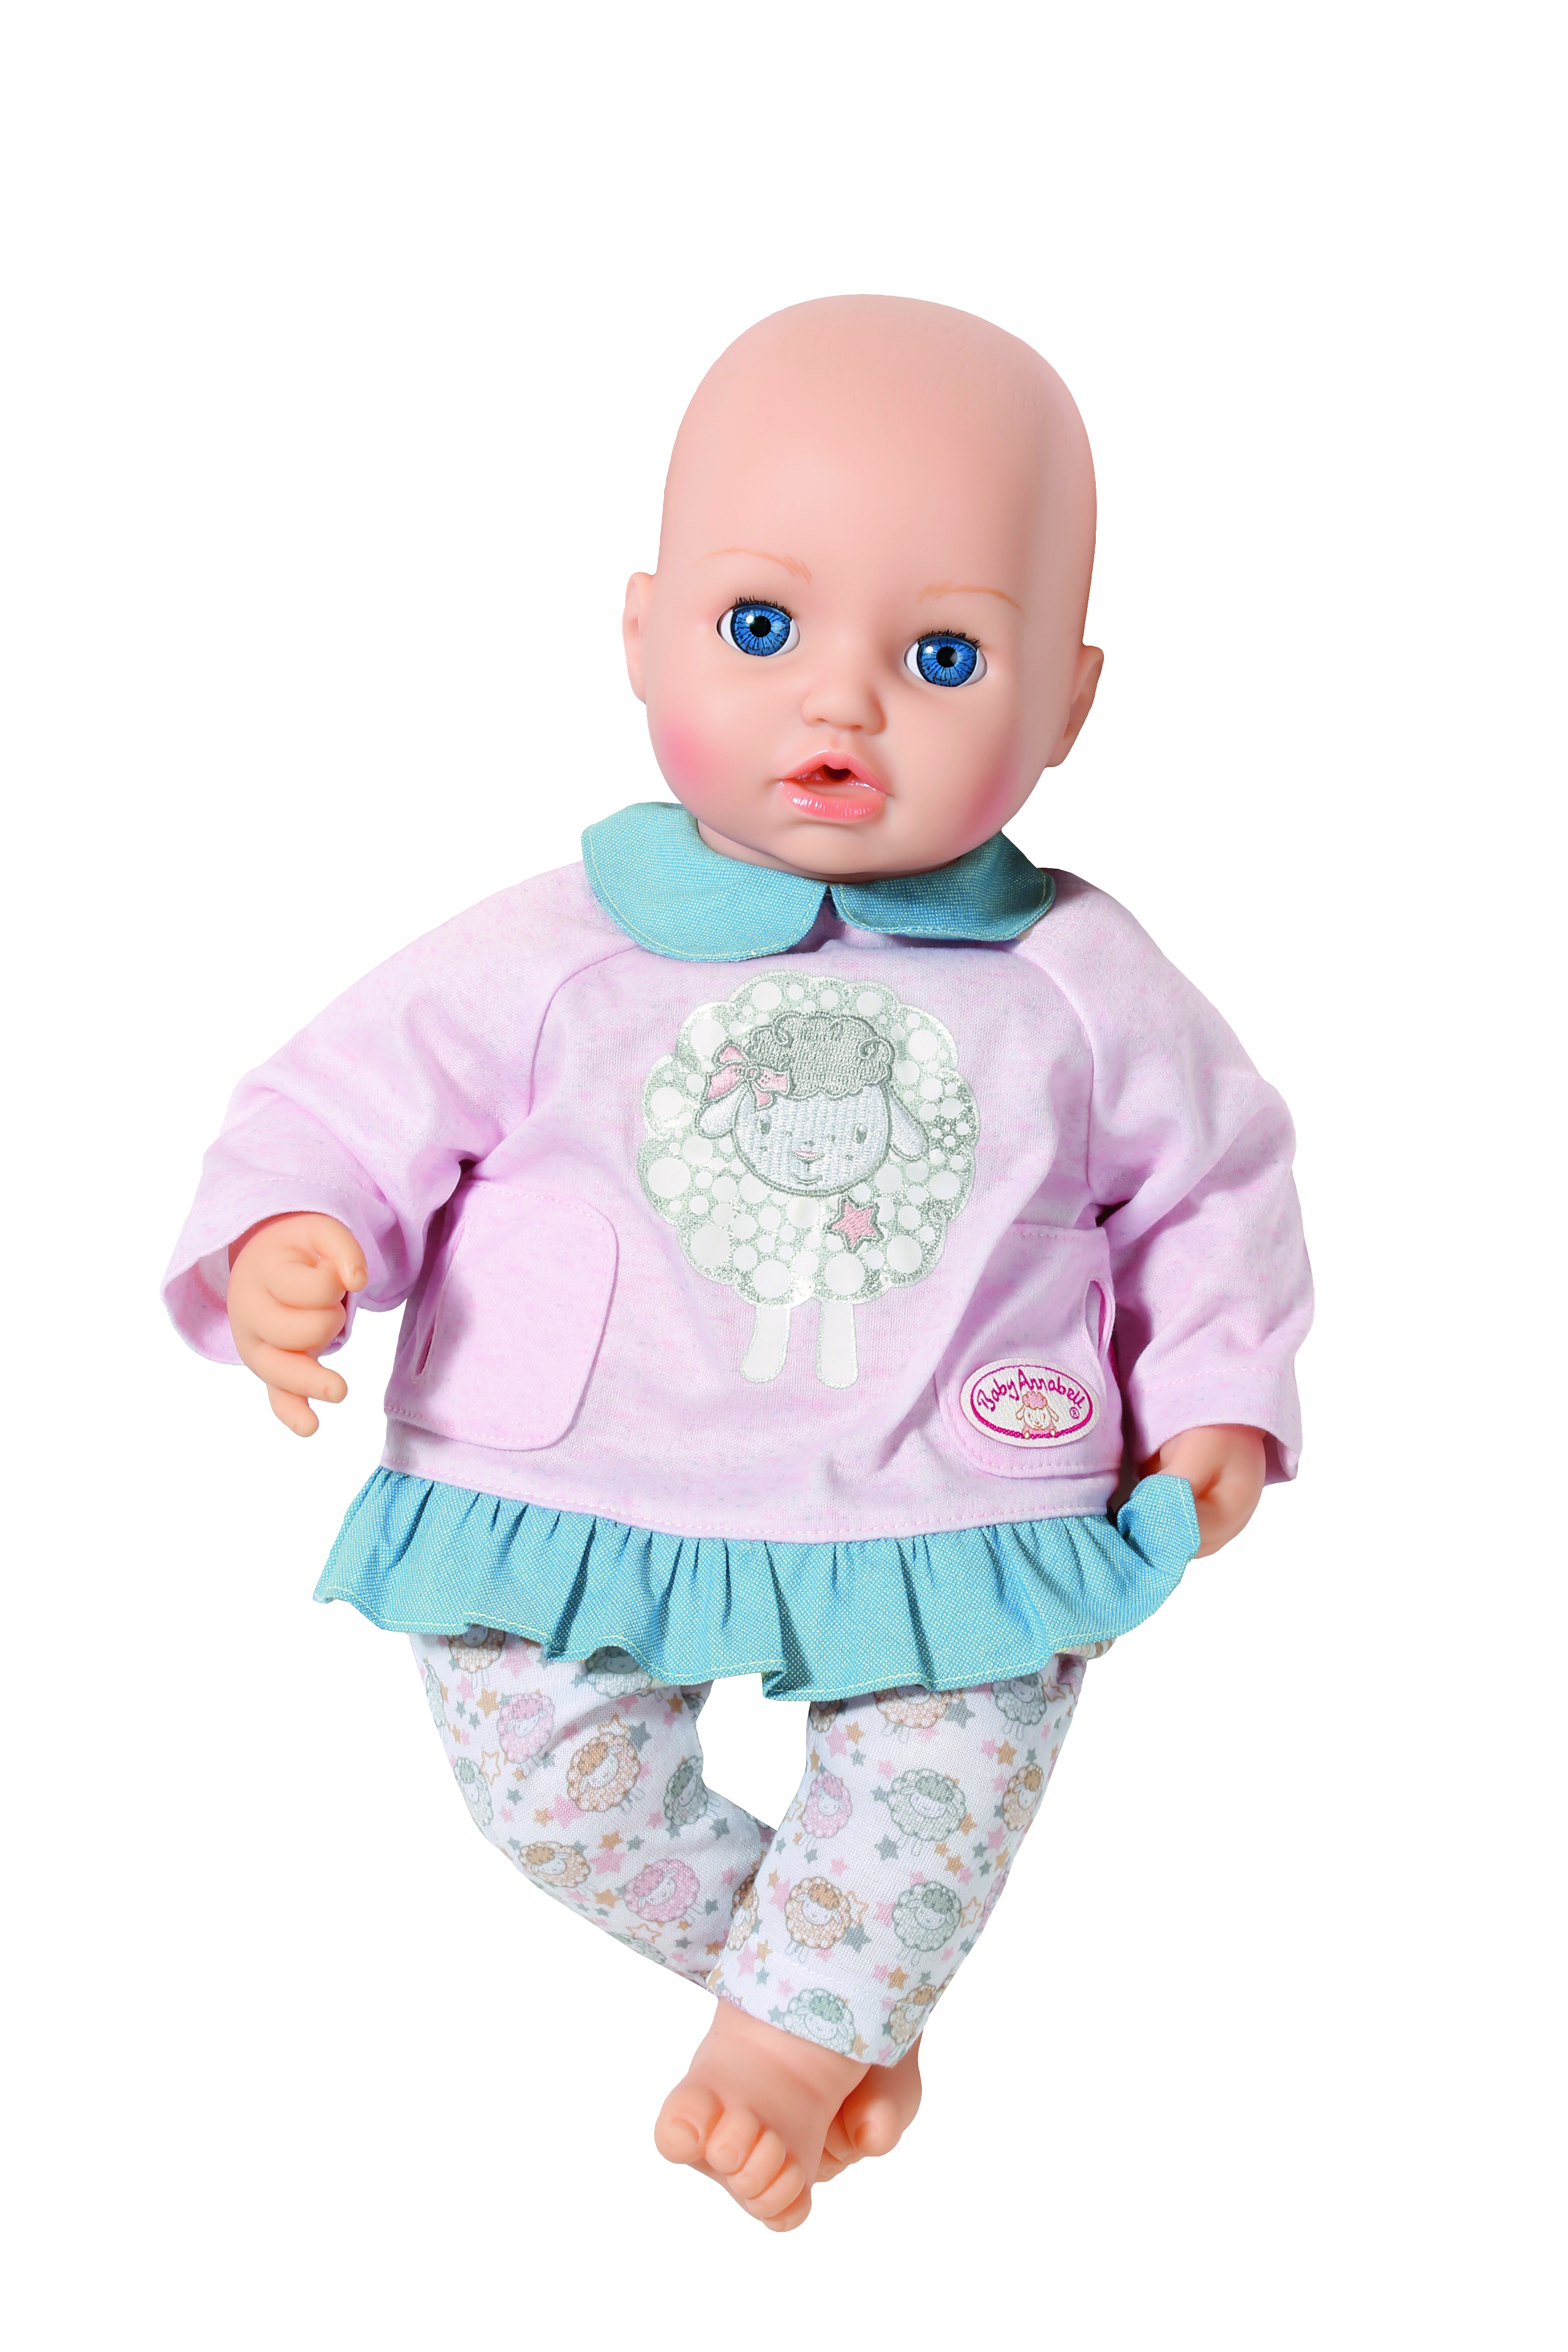 562b3153ba7 δεδομένα προϊόντων Baby Annabell Play Outfit Σετ ρούχων κούκλας ...